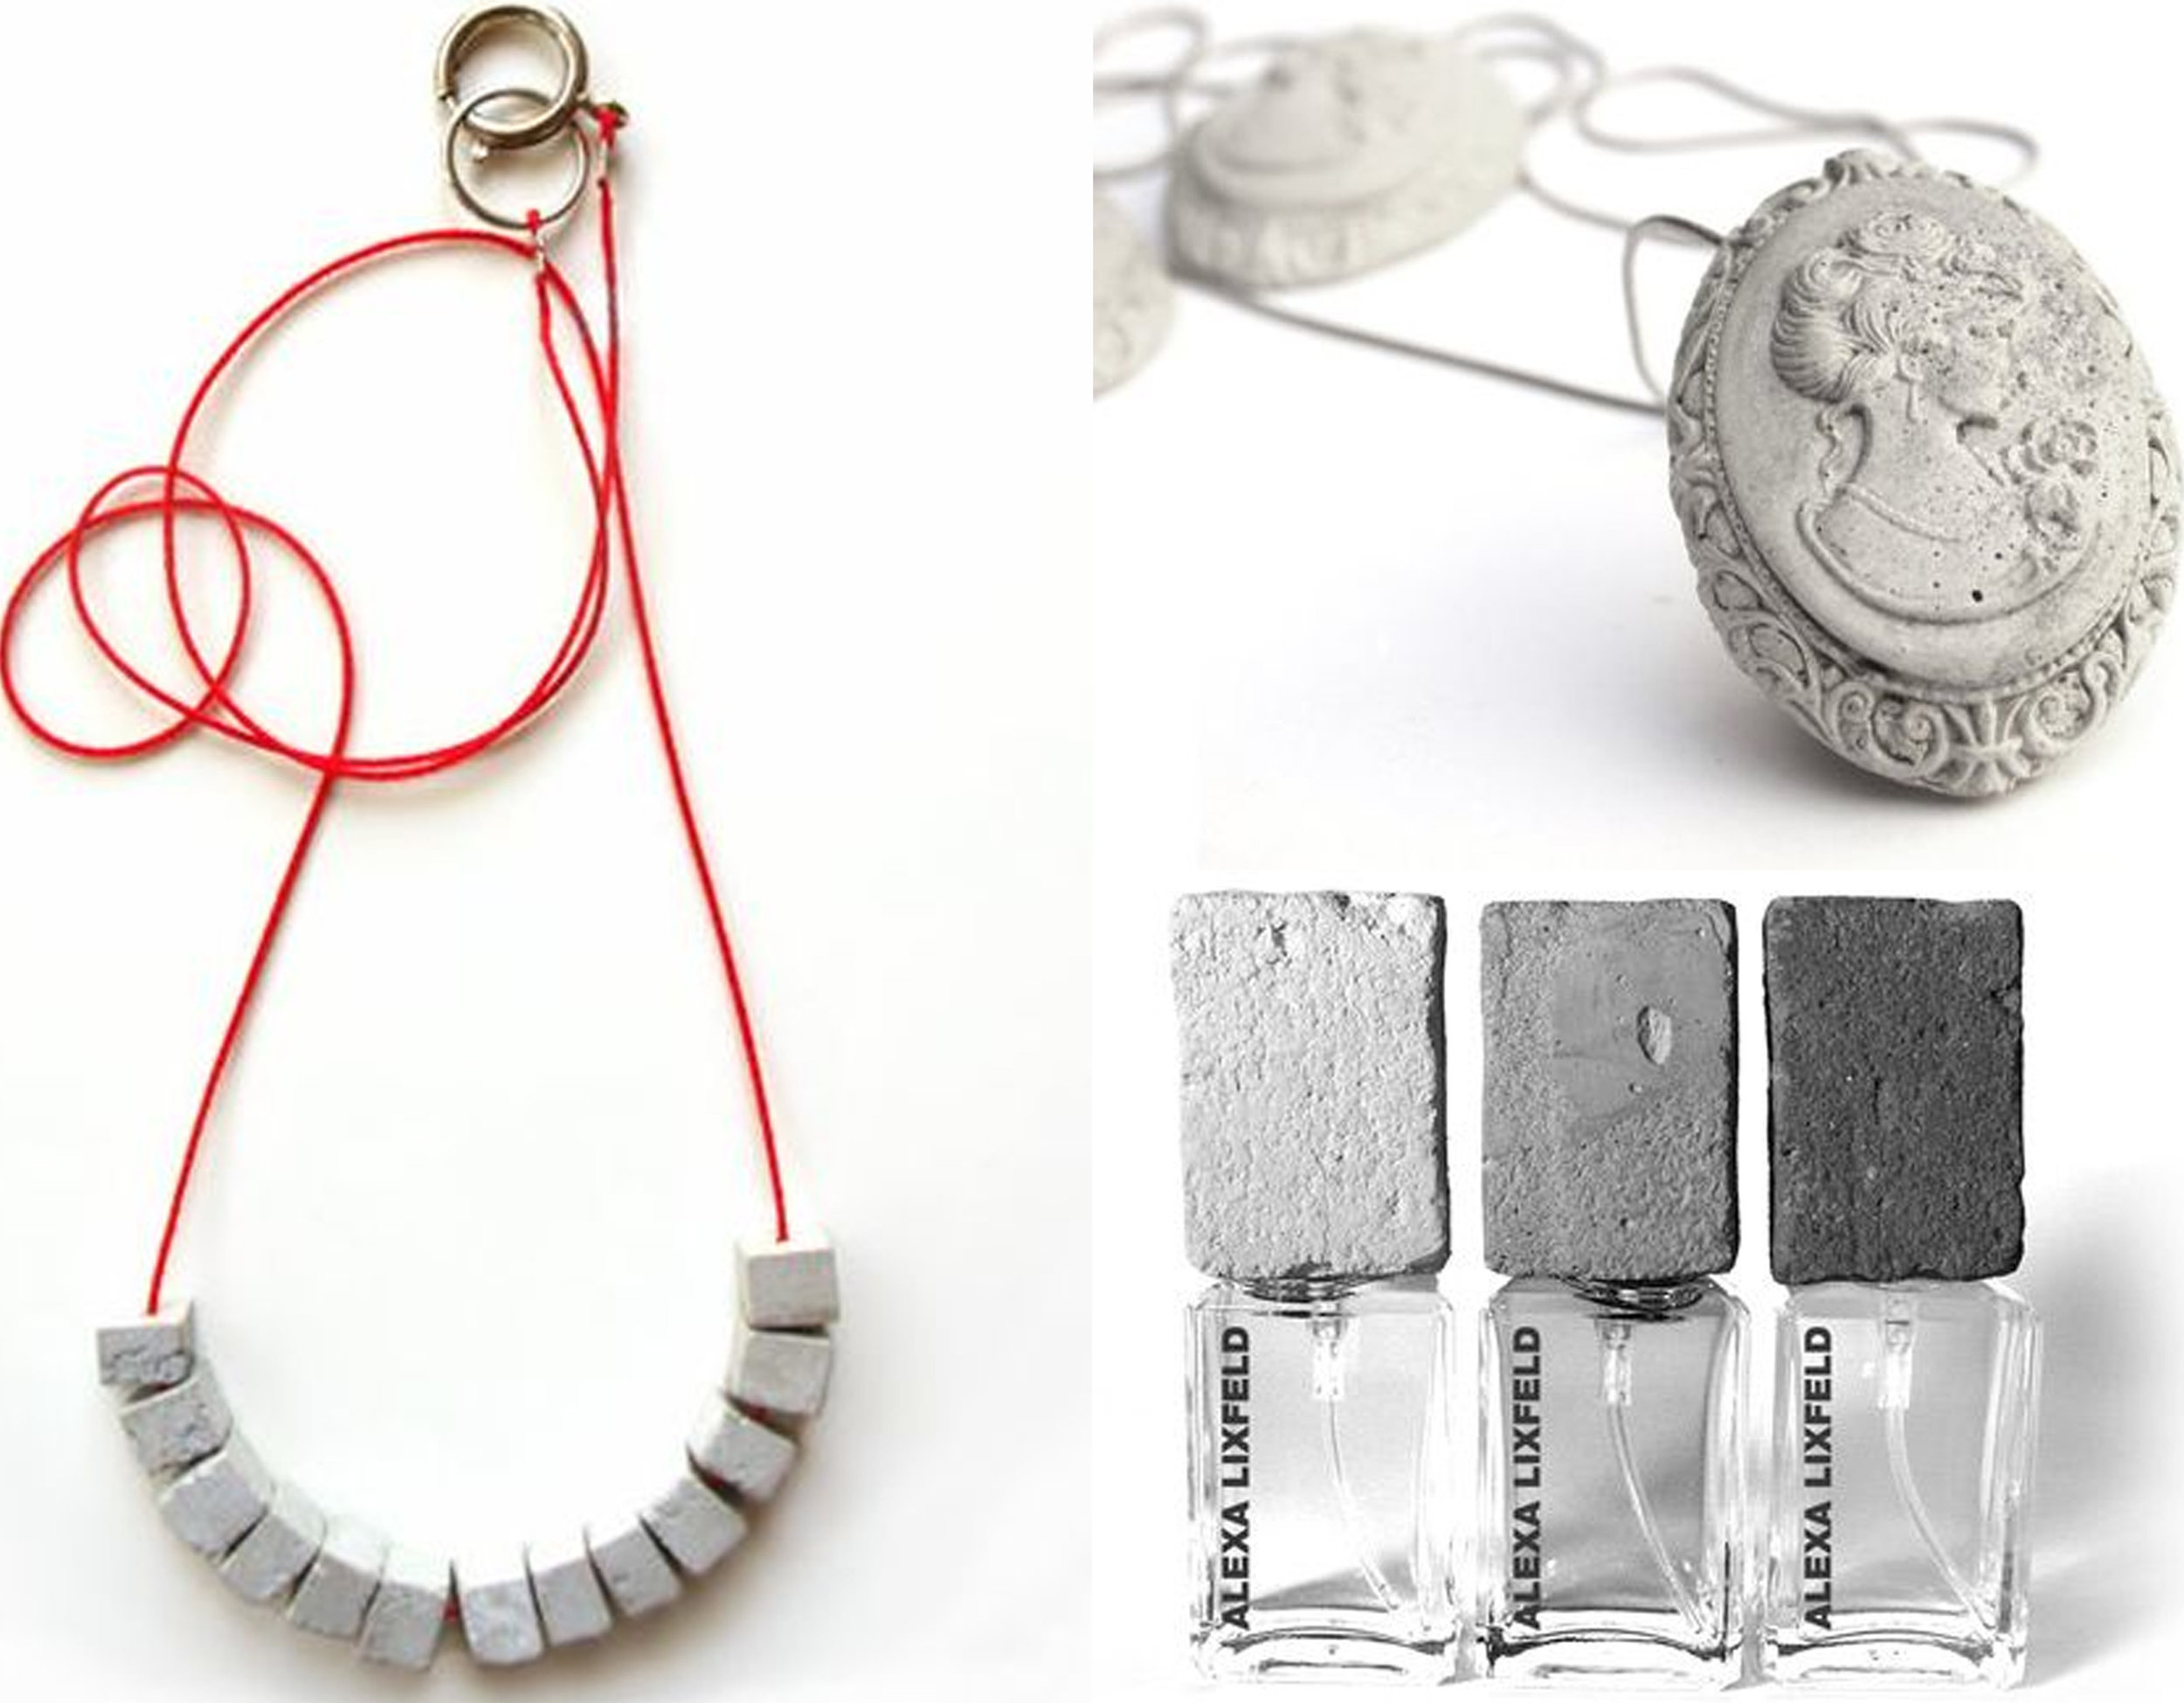 Urban necklace and Cameo necklace  Shooosh Jewelry  - concrete top for perfume bottle designed by Alexa Lixfeld via  Dezeen